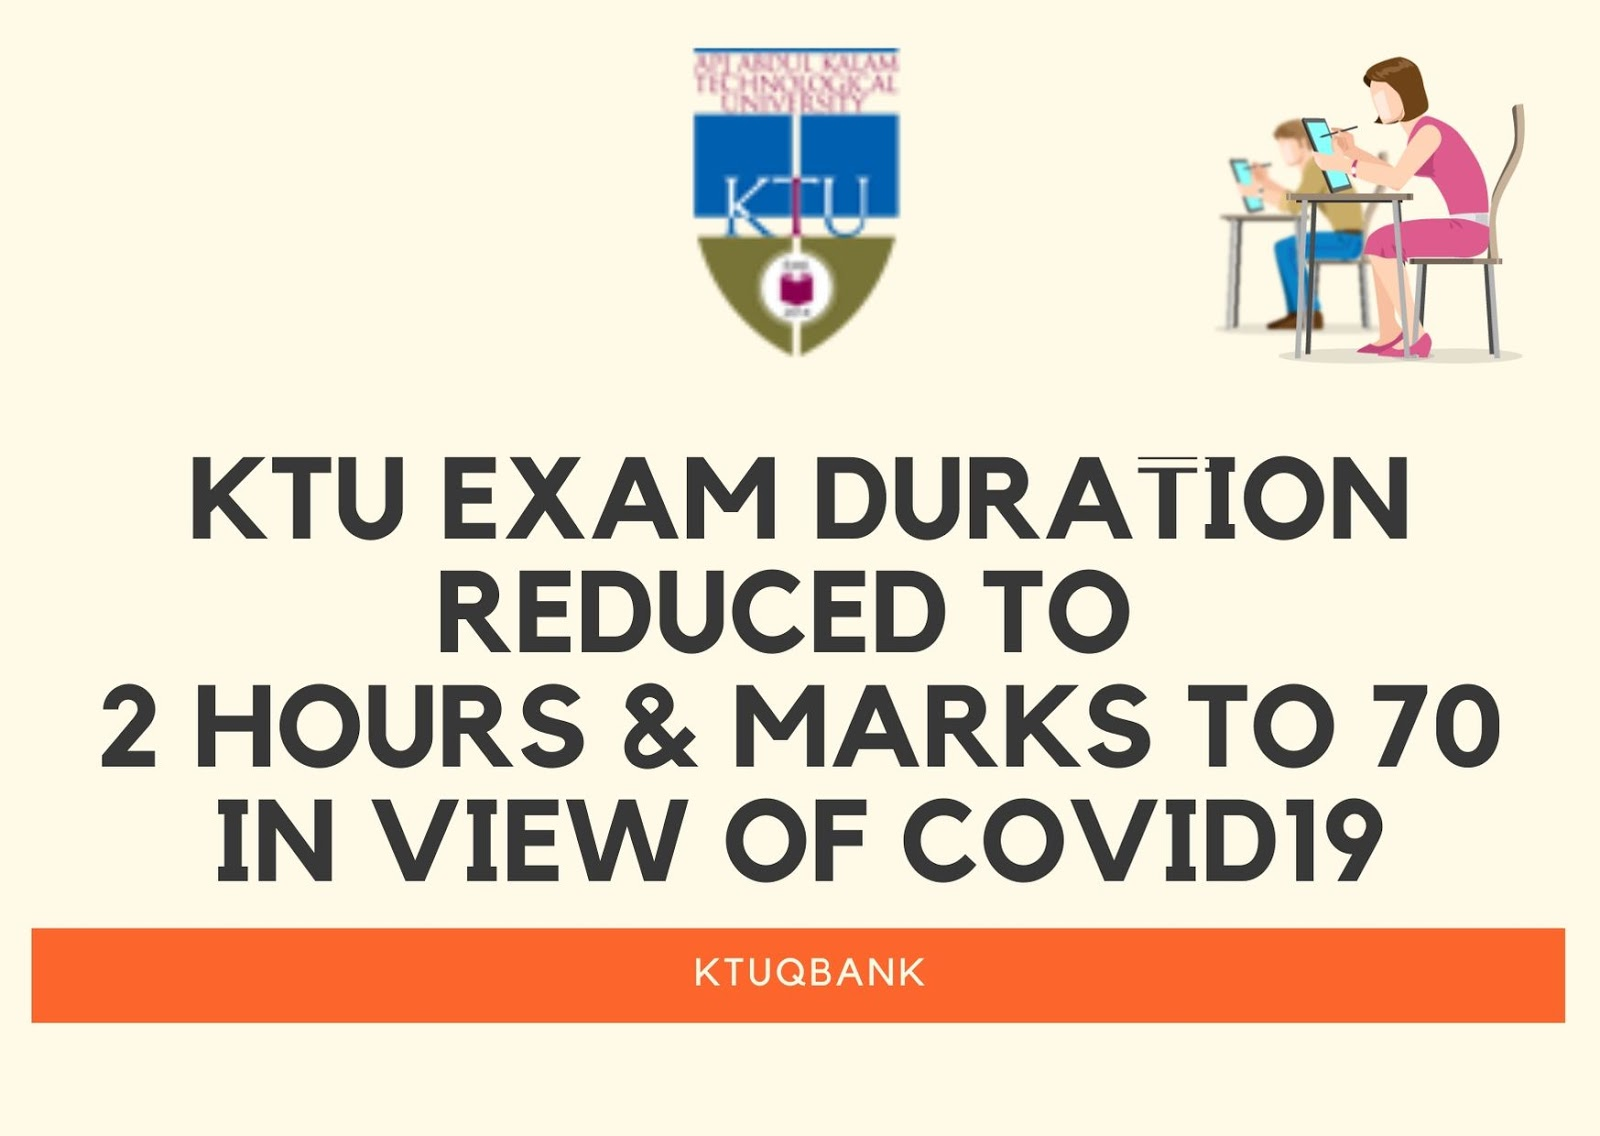 KTU Exam Duration reduced to 2 Hours & Marks in 70 in View of COVID-19|KTU Exam Duration reduced to 2 Hours & Marks in 70 in View of COVID-19| Question Papers (2015 batch)